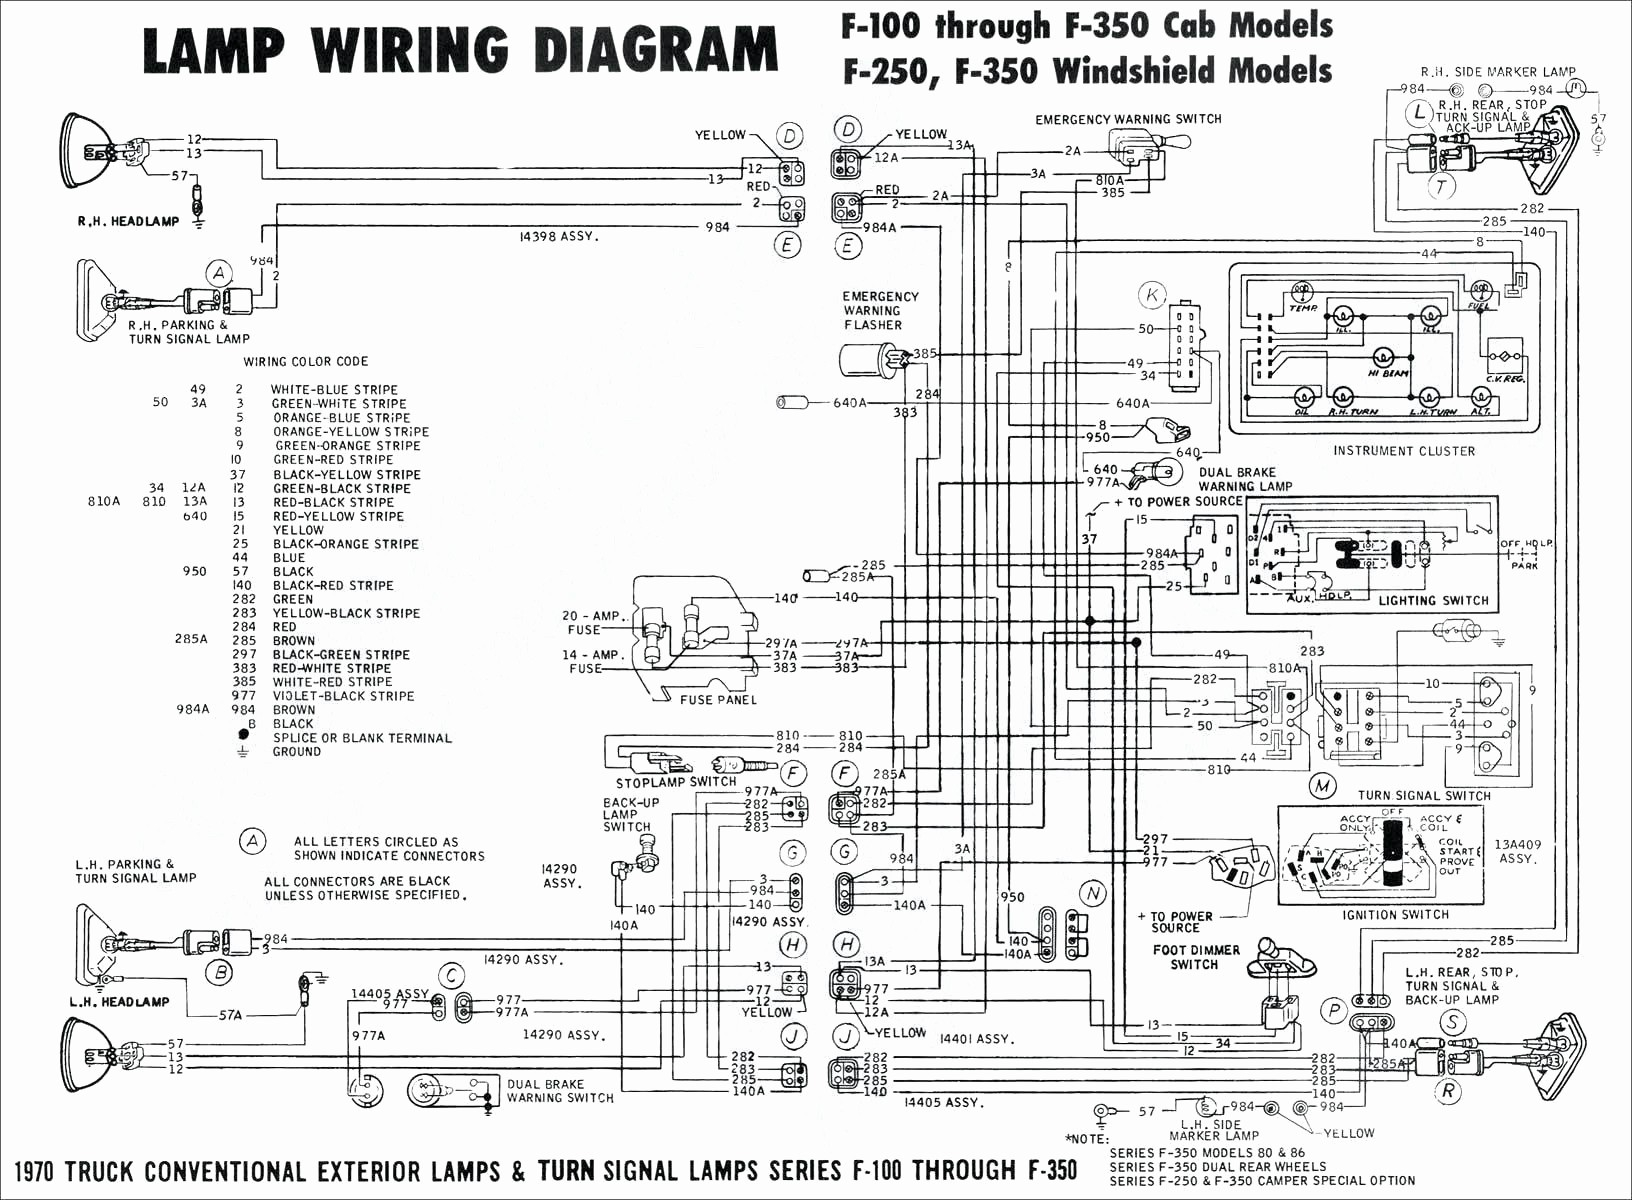 2004 chrysler pacifica wiring schematic | free wiring diagram chrysler pacifica bcm wiring diagram chrysler pacifica trailer wiring #14